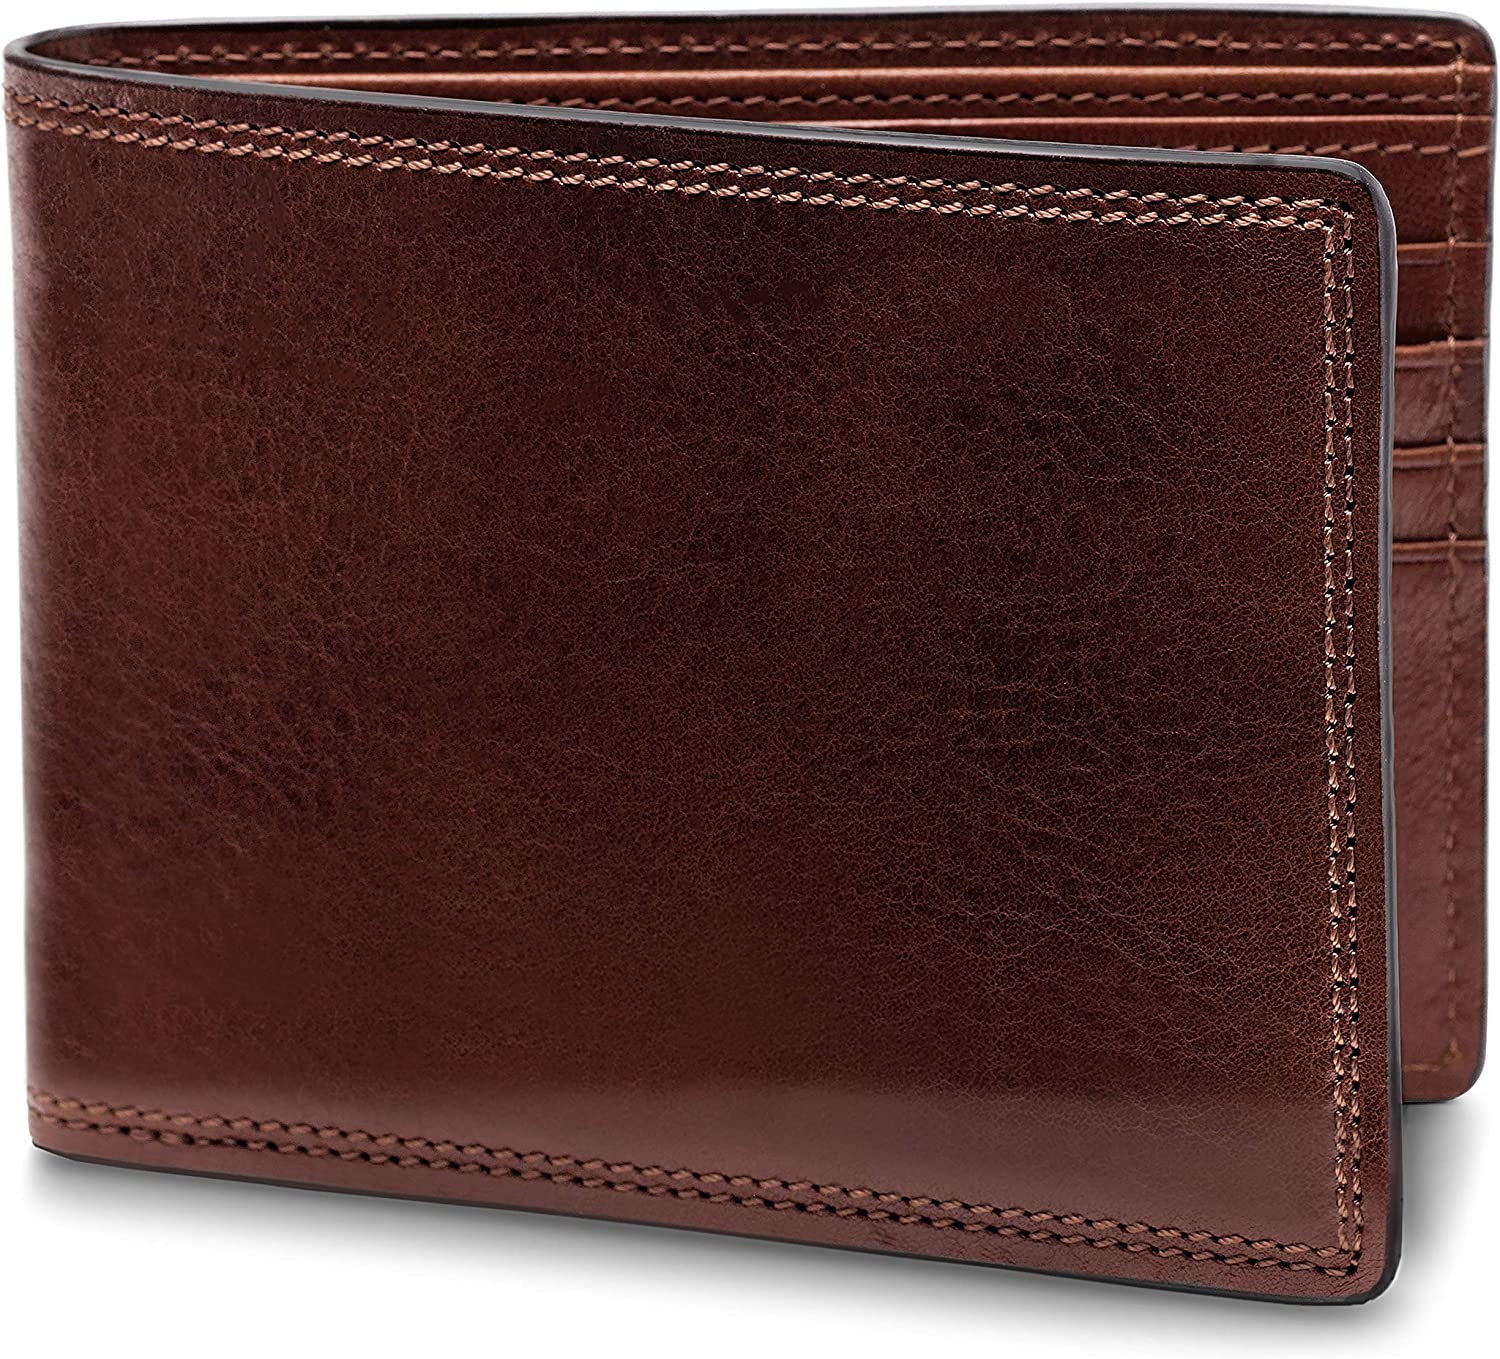 Bosca Men's 8 Pocket Leather Executive Easy-to-use Wallet Max 90% OFF Deluxe